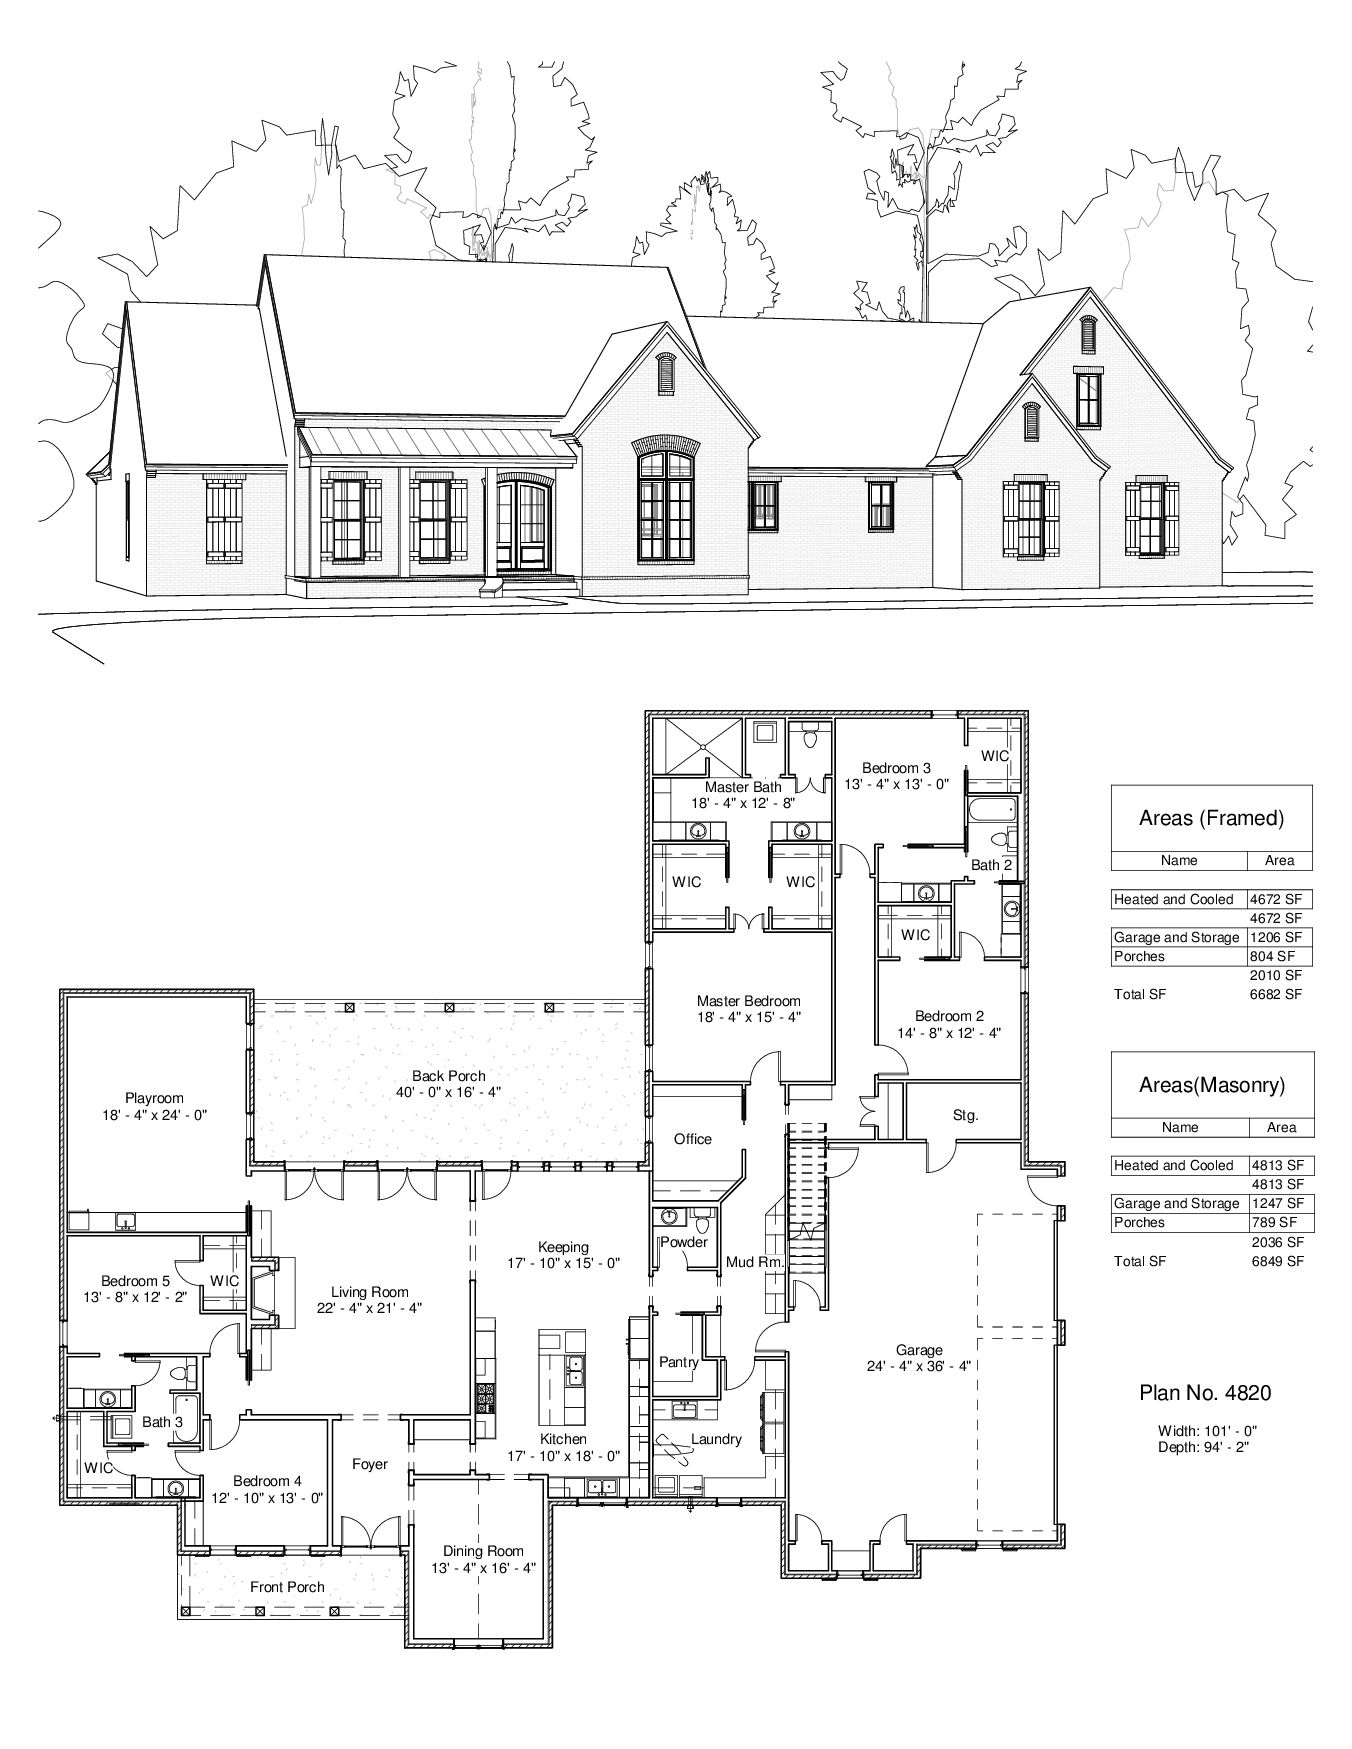 Plan 4820 Design Studio New House Plans Floor Plans House Plans